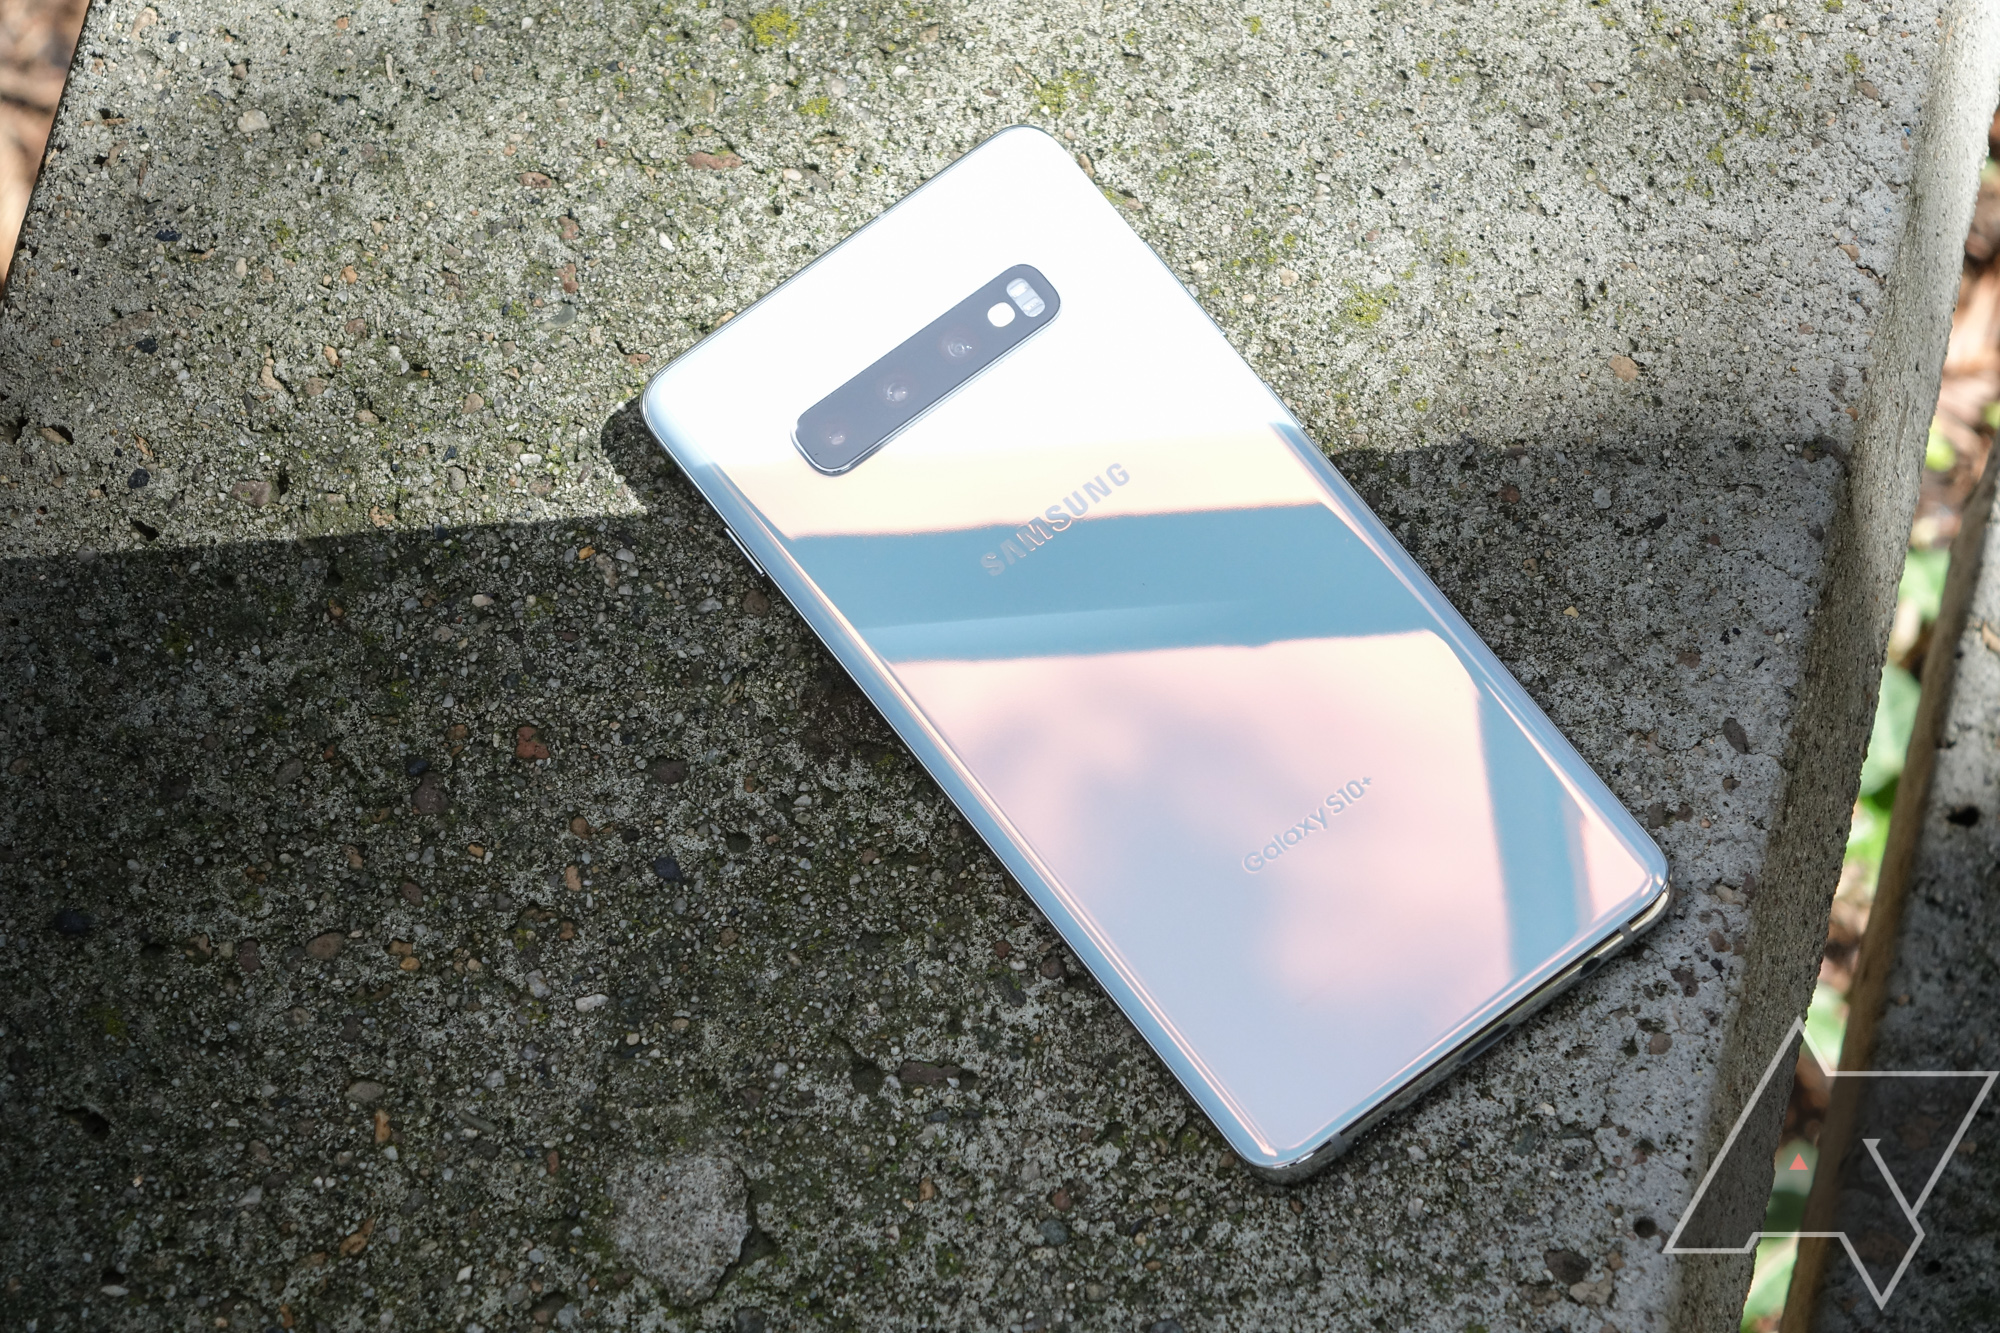 Why is the Samsung Galaxy Fold's screen breaking 'within days of use'?